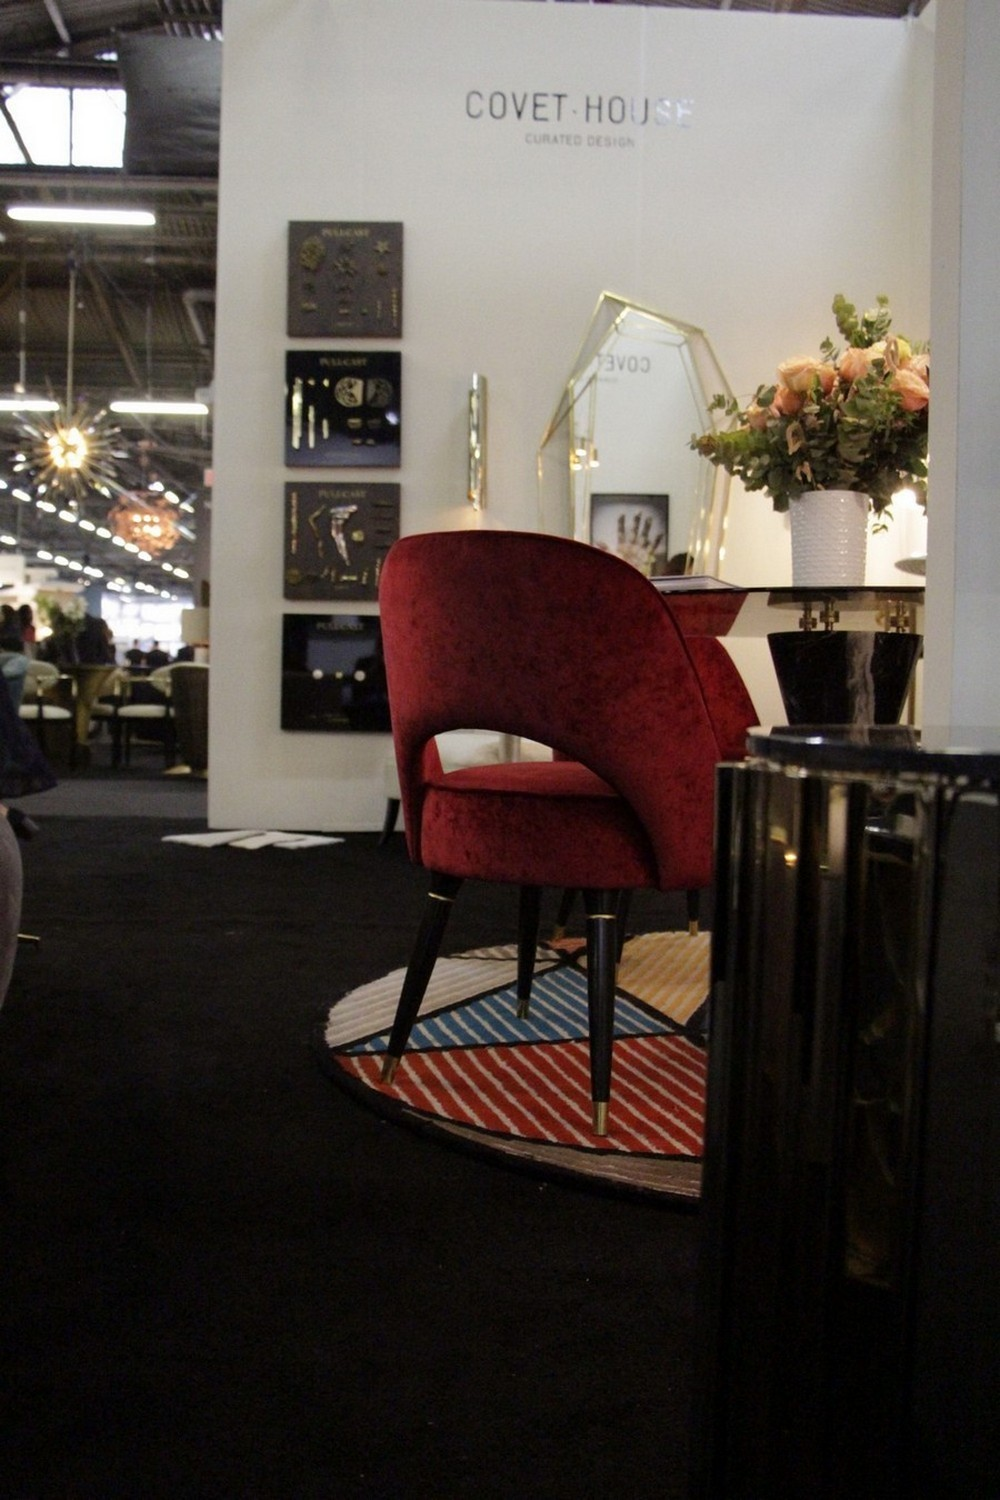 Covet House Blew Us Away At AD Design Show 2019 covet house Covet House Blew Us Away At AD Design Show 2019 Covet House Blew Us Away At AD Design Show 2019 1